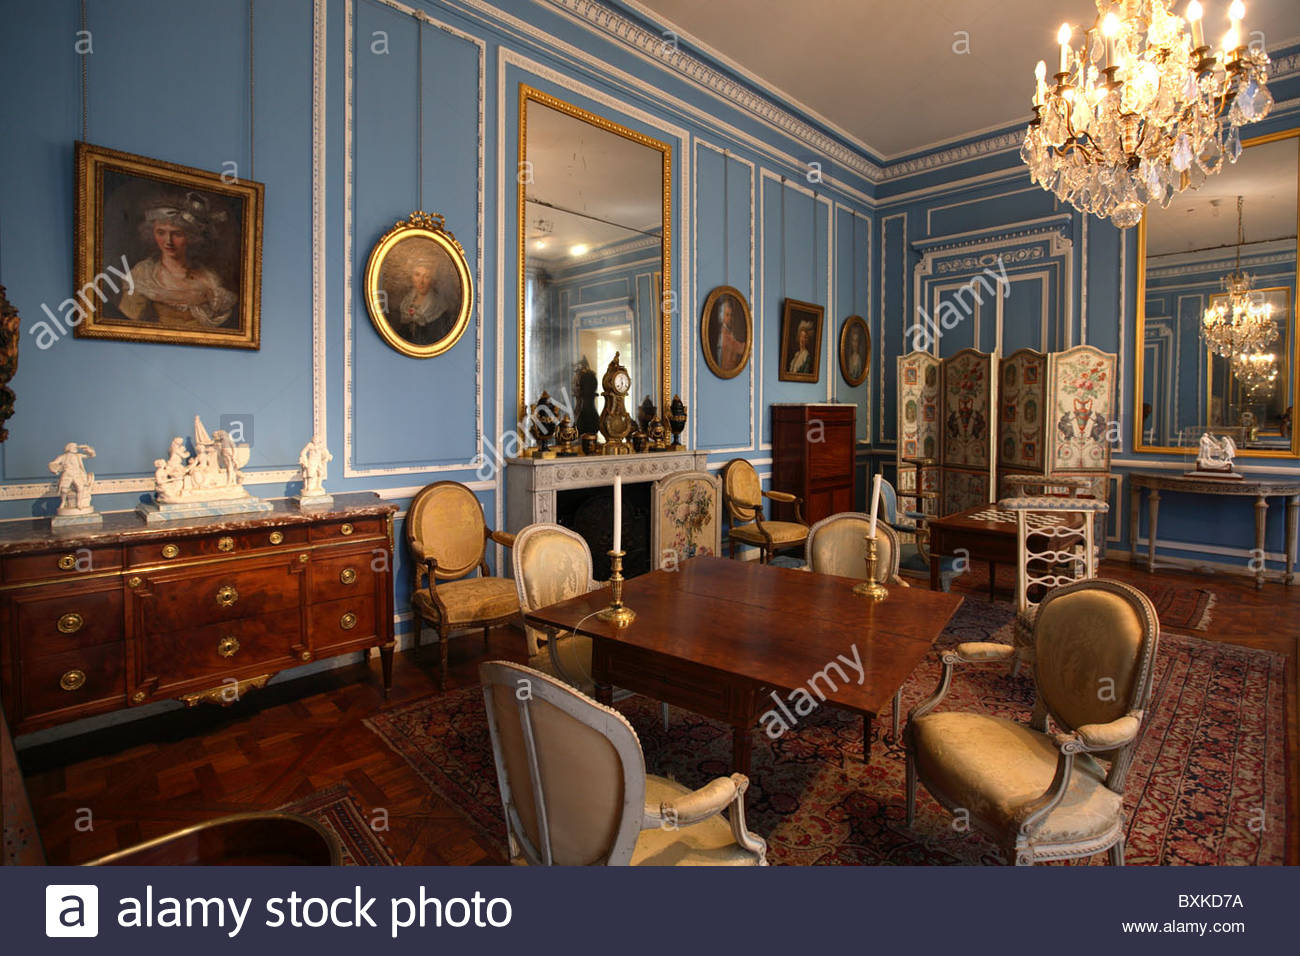 Salon bleu louis xvi in musee carnavalet paris stock for Salon louis 16